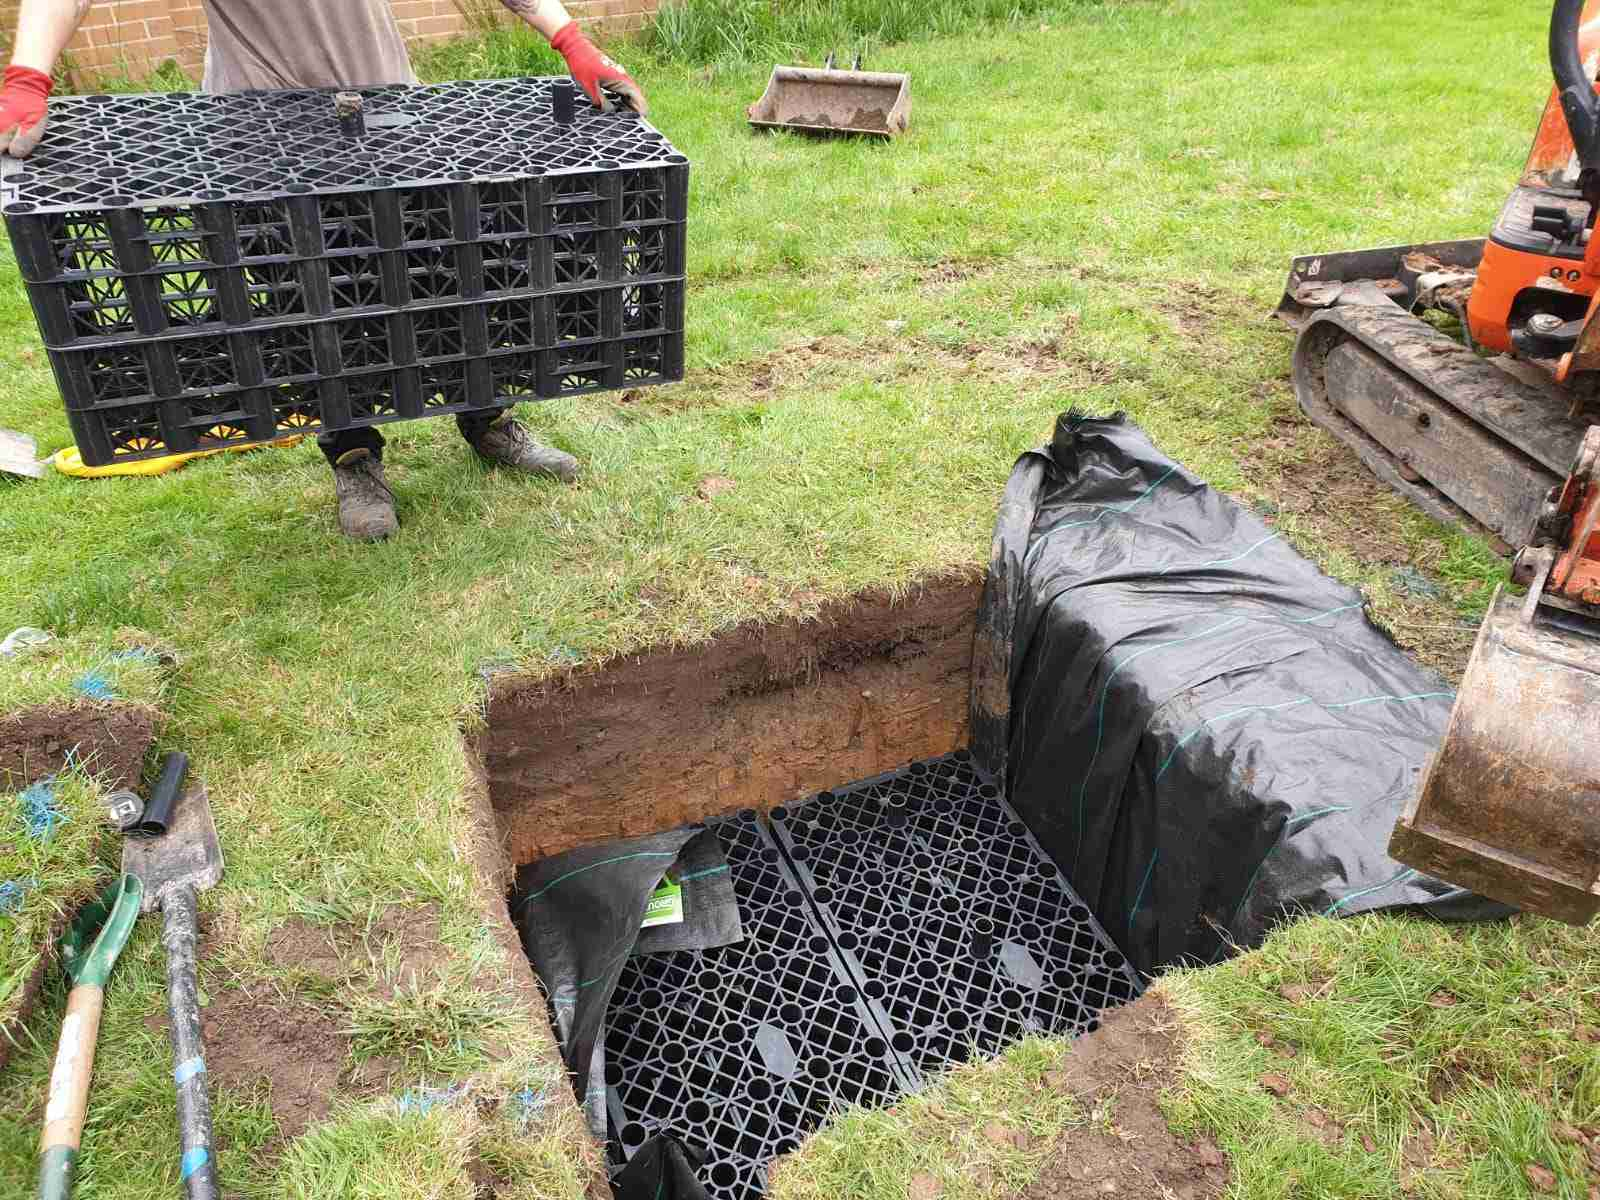 Square hole in garden filled with drainage cubes